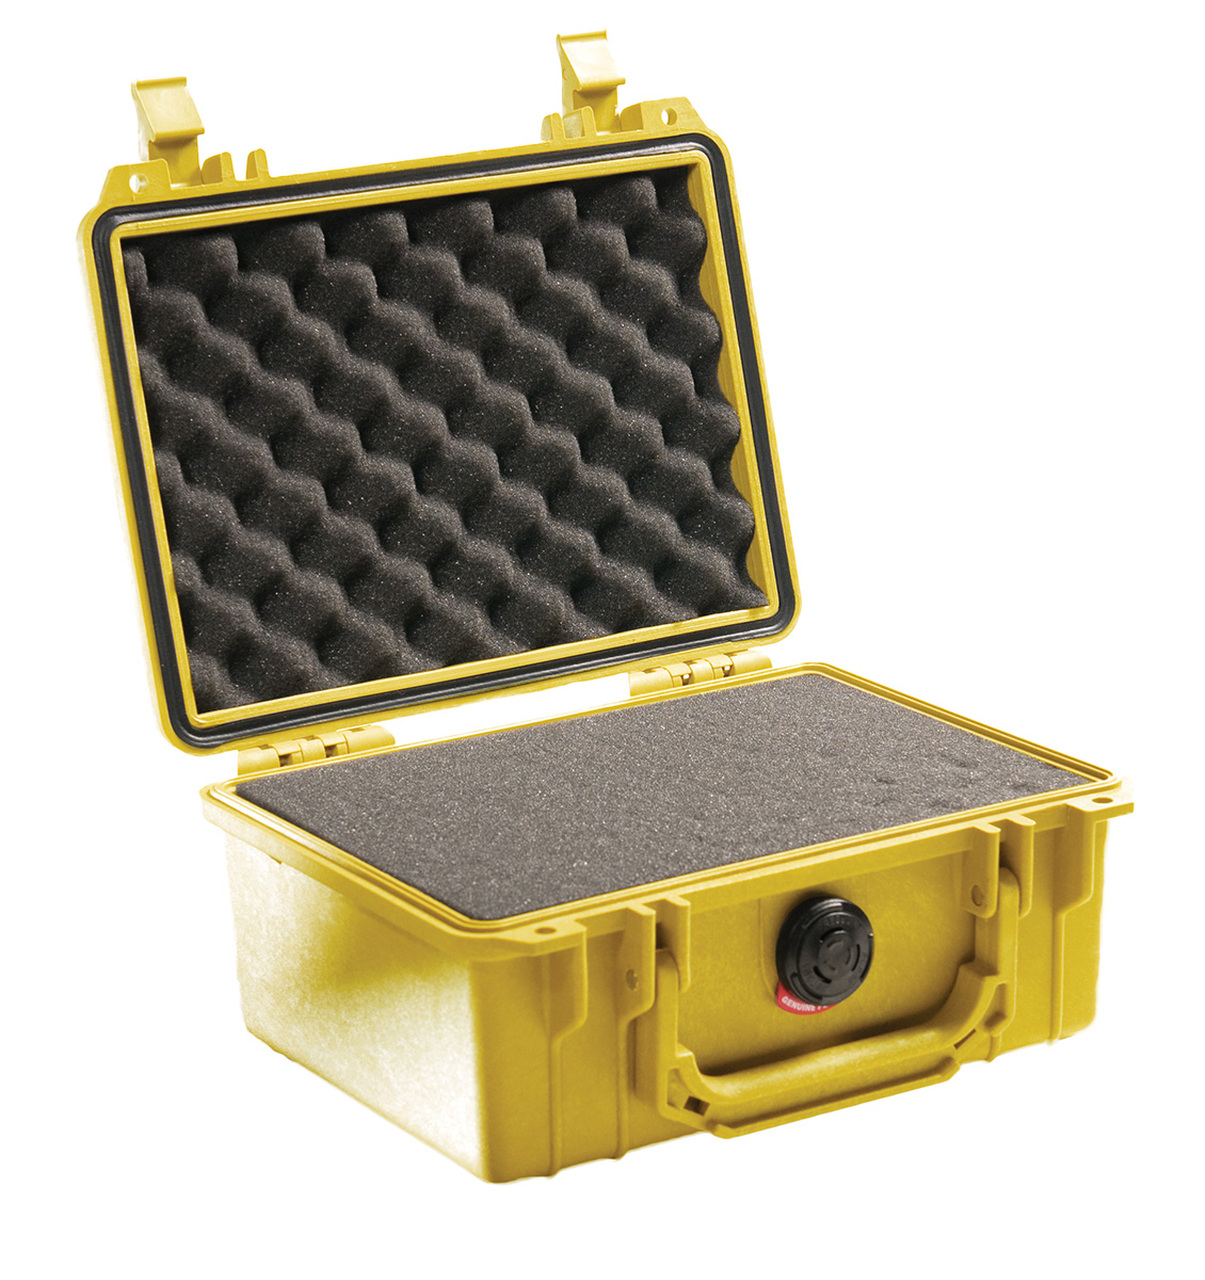 Pelican 1150 Small Protector Case, Watertight, Crushproof, and Dustproof, with Optional Foam Insert or TrekPak Divider System, Available in Black, Silver, Orange, Yellow, Blue, OD Green, or Desert Tan, 16x15x11, 14 lbs (w-out foam, 13 lbs)